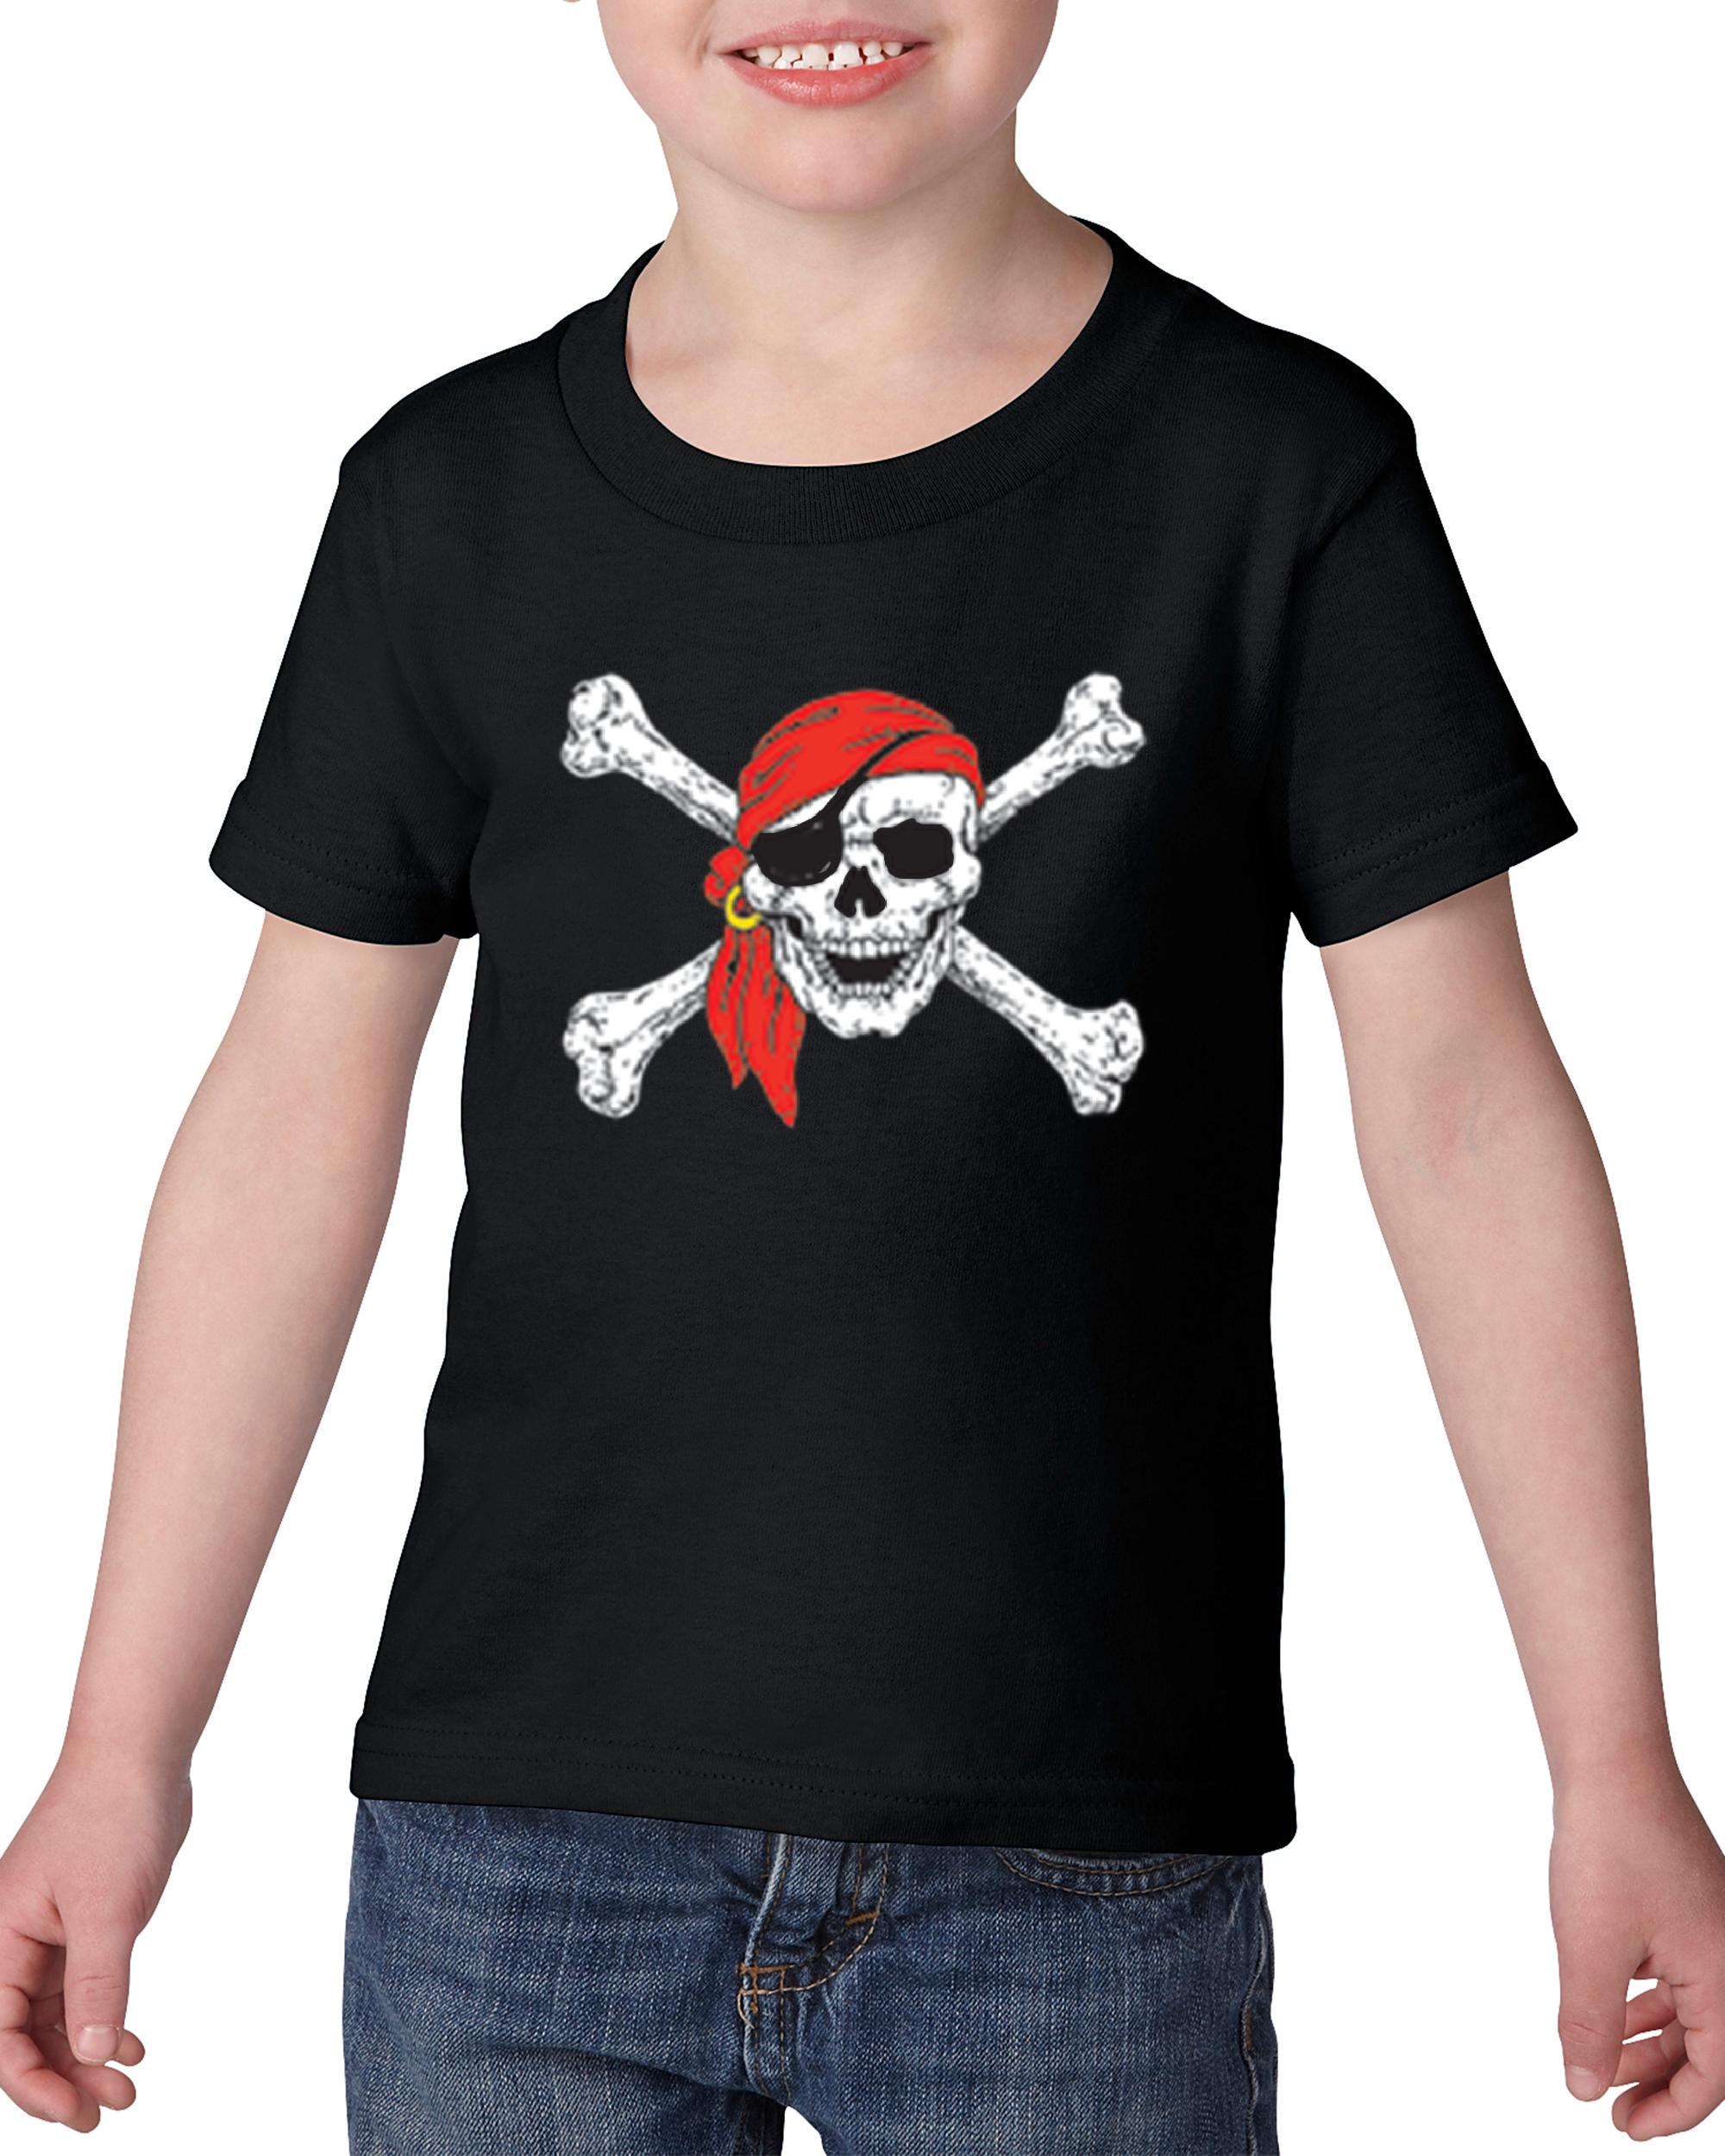 Artix Jolly Roger Skull Crossbones Toddler Kids T-Shirt Tee Clothing